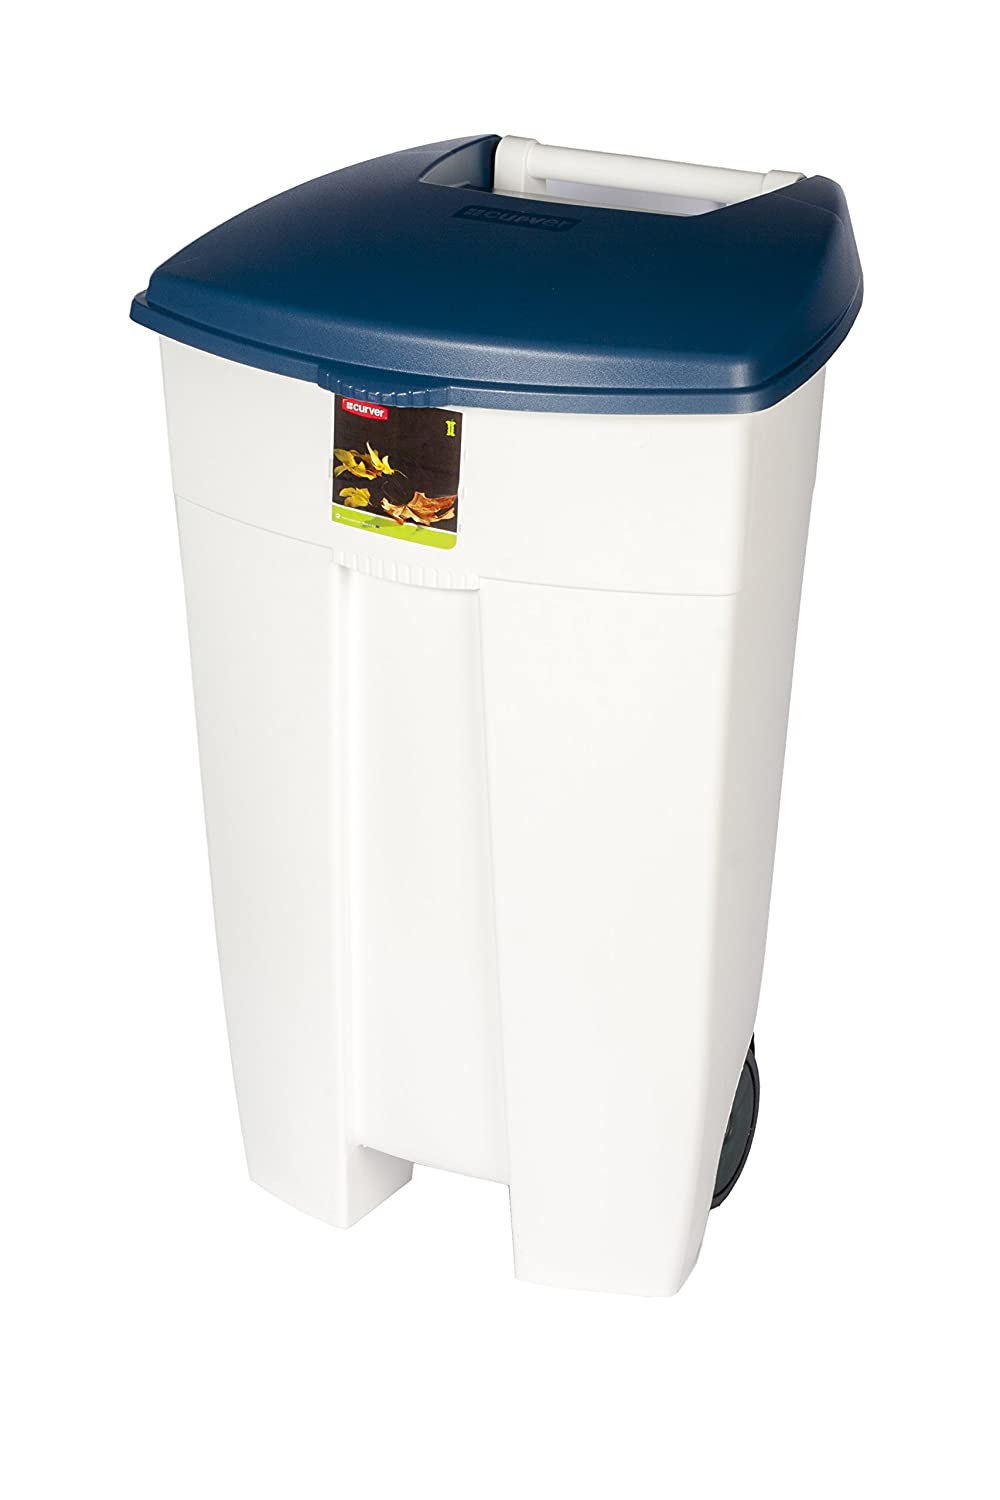 Rubbermaid Commercial Eco Step On Bin - White/Blue R050035